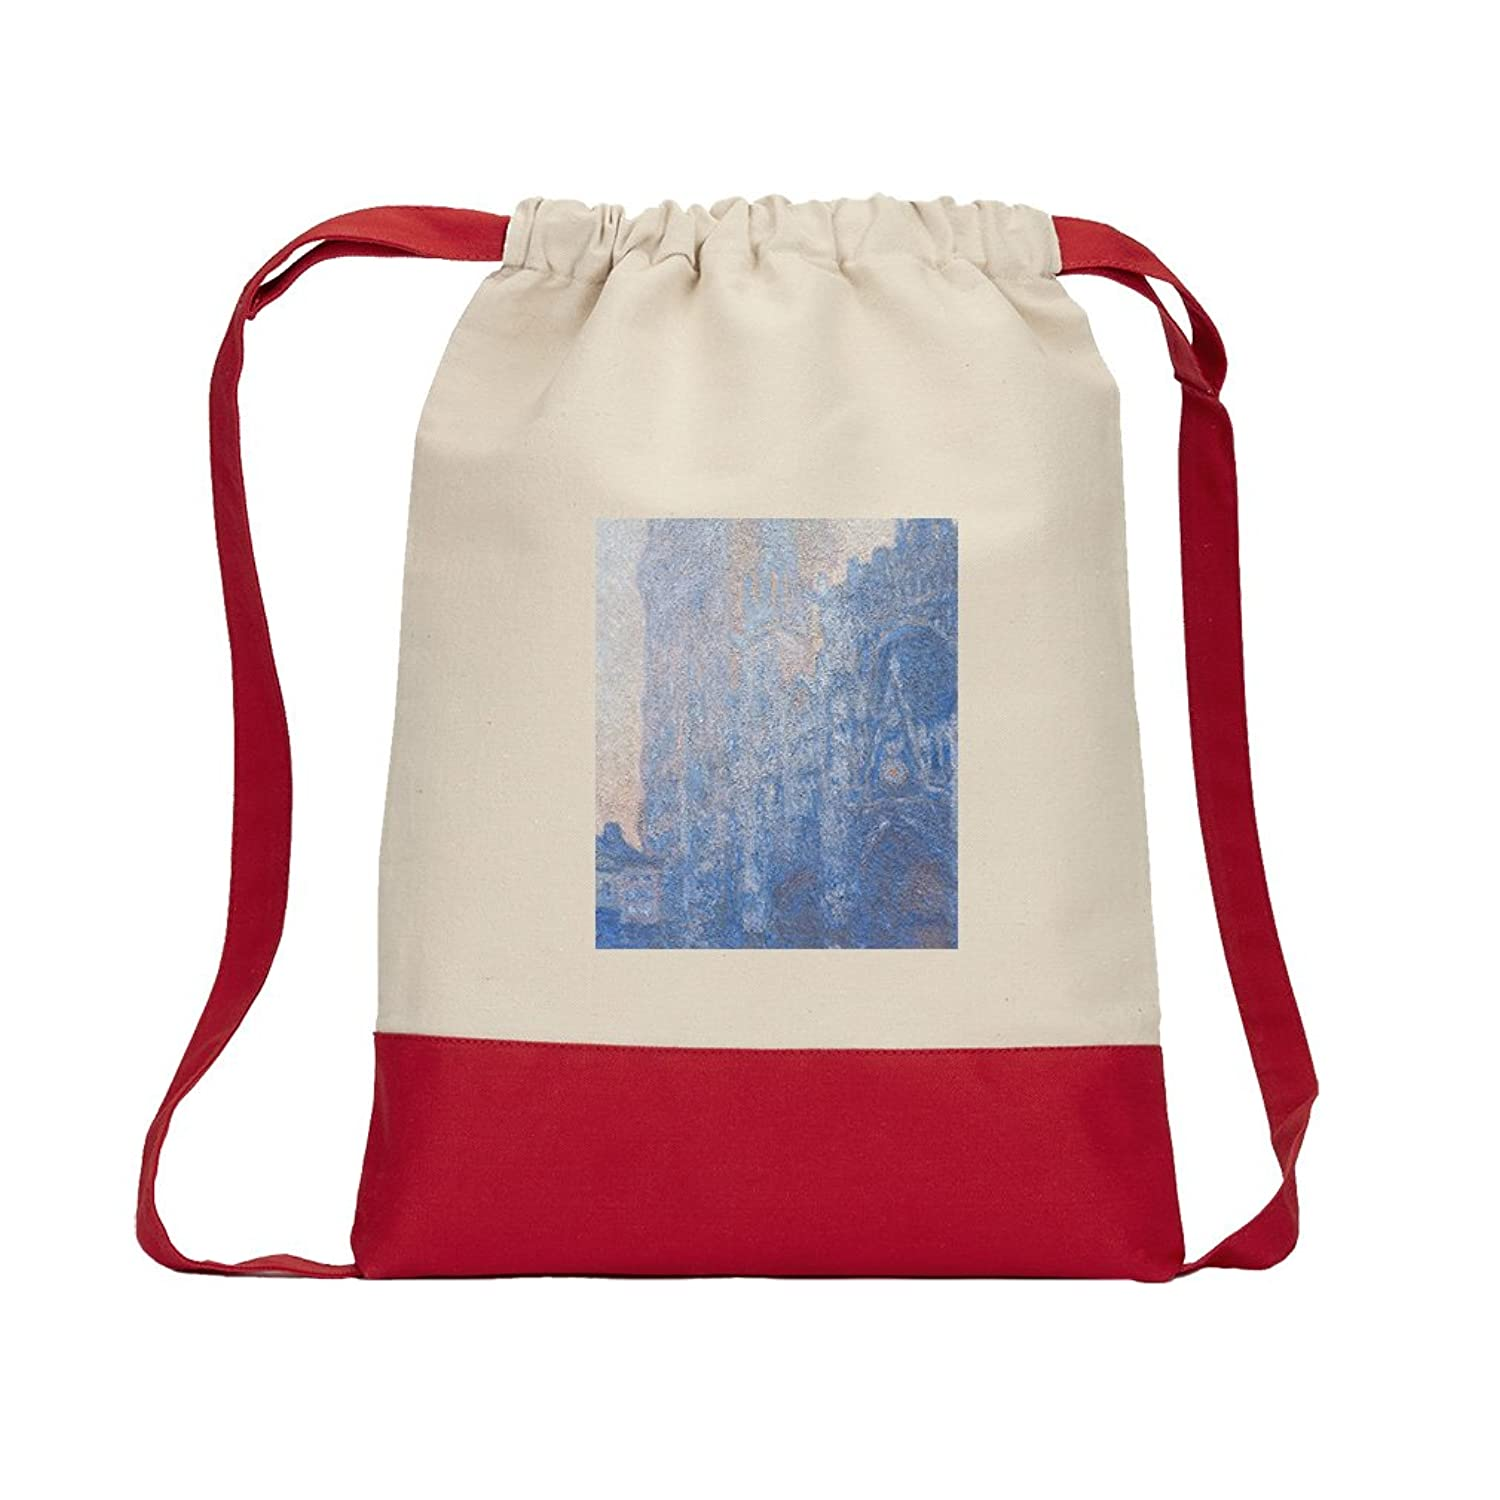 Rouen Cathedral Facade (Monet) Canvas Backpack Color Drawstring Bag